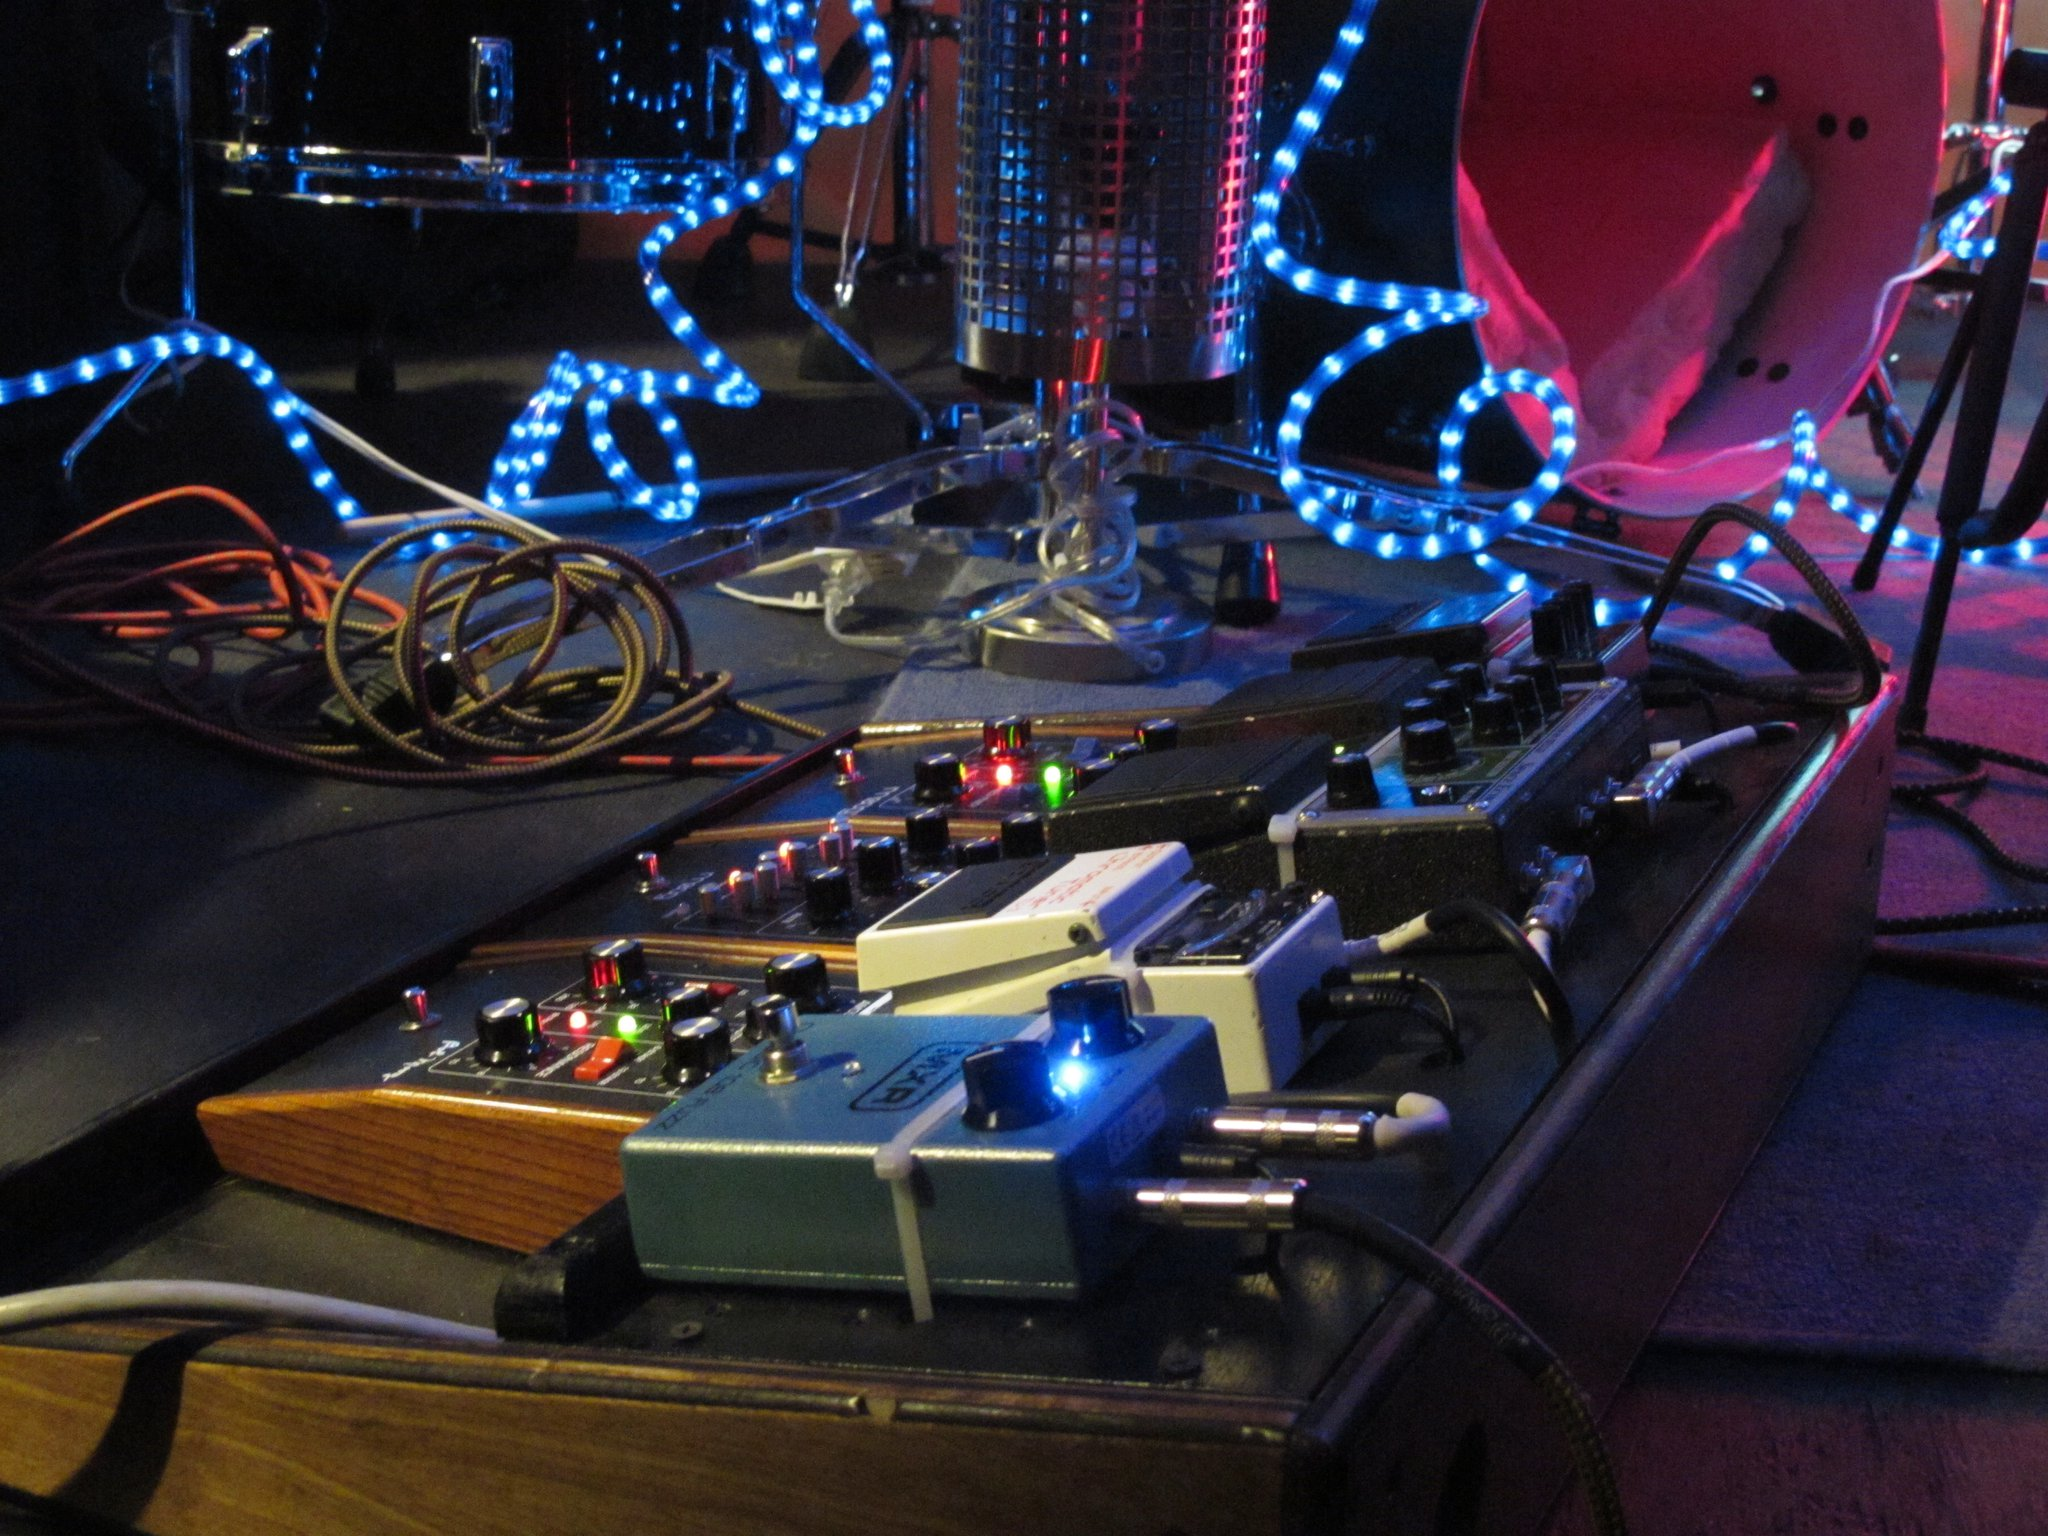 Pedalboard on stage